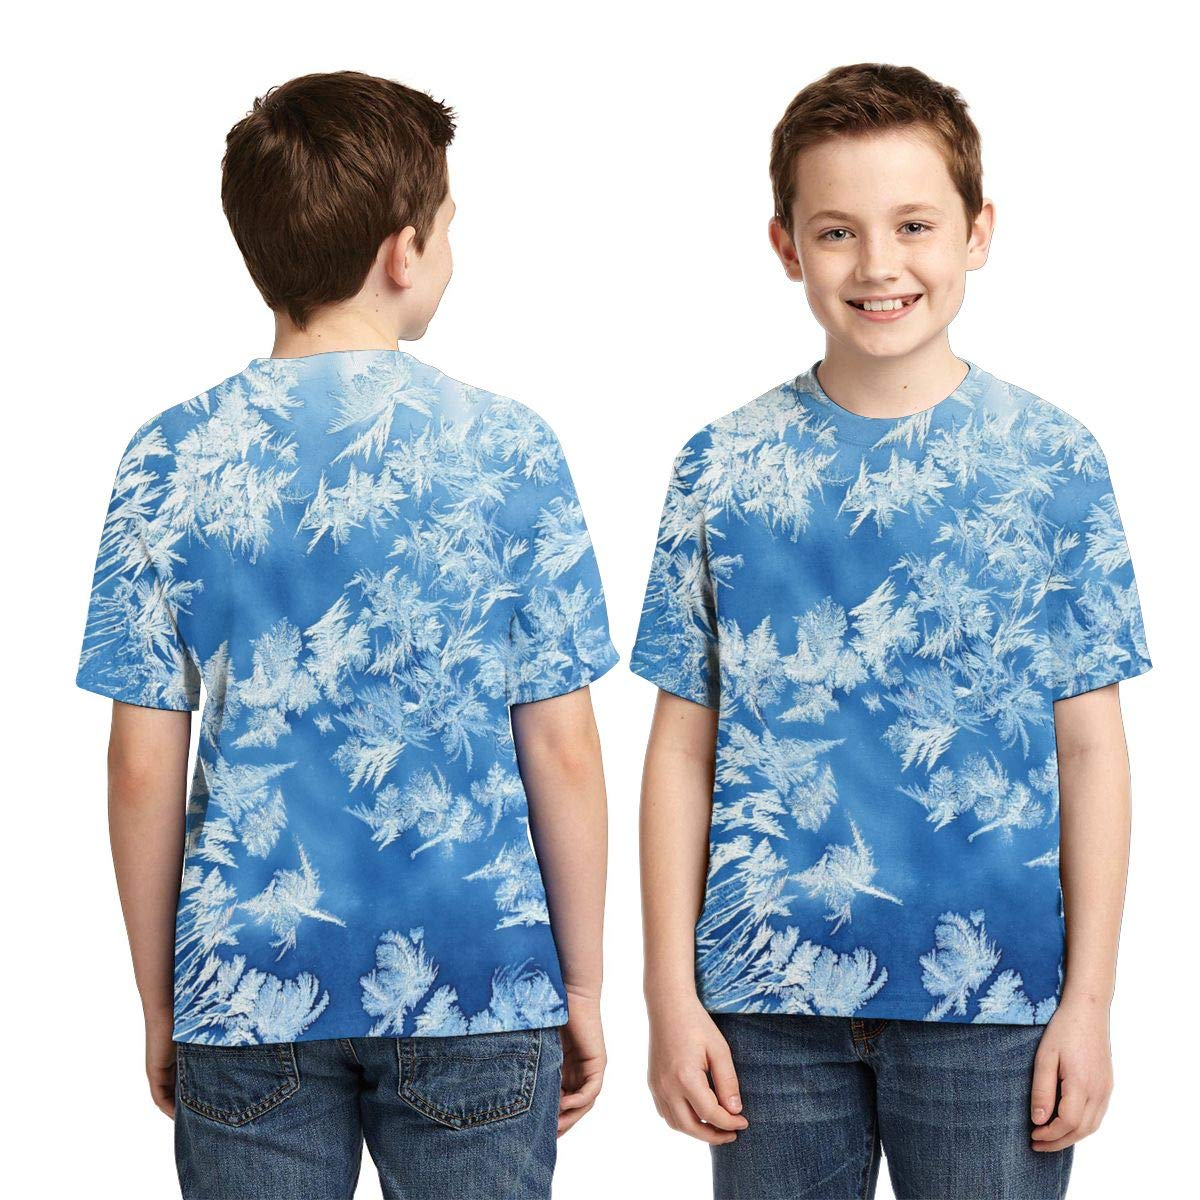 AMODECO Ice 3D Printed Tee T-Shirt for Youth Teenager Boys Girls